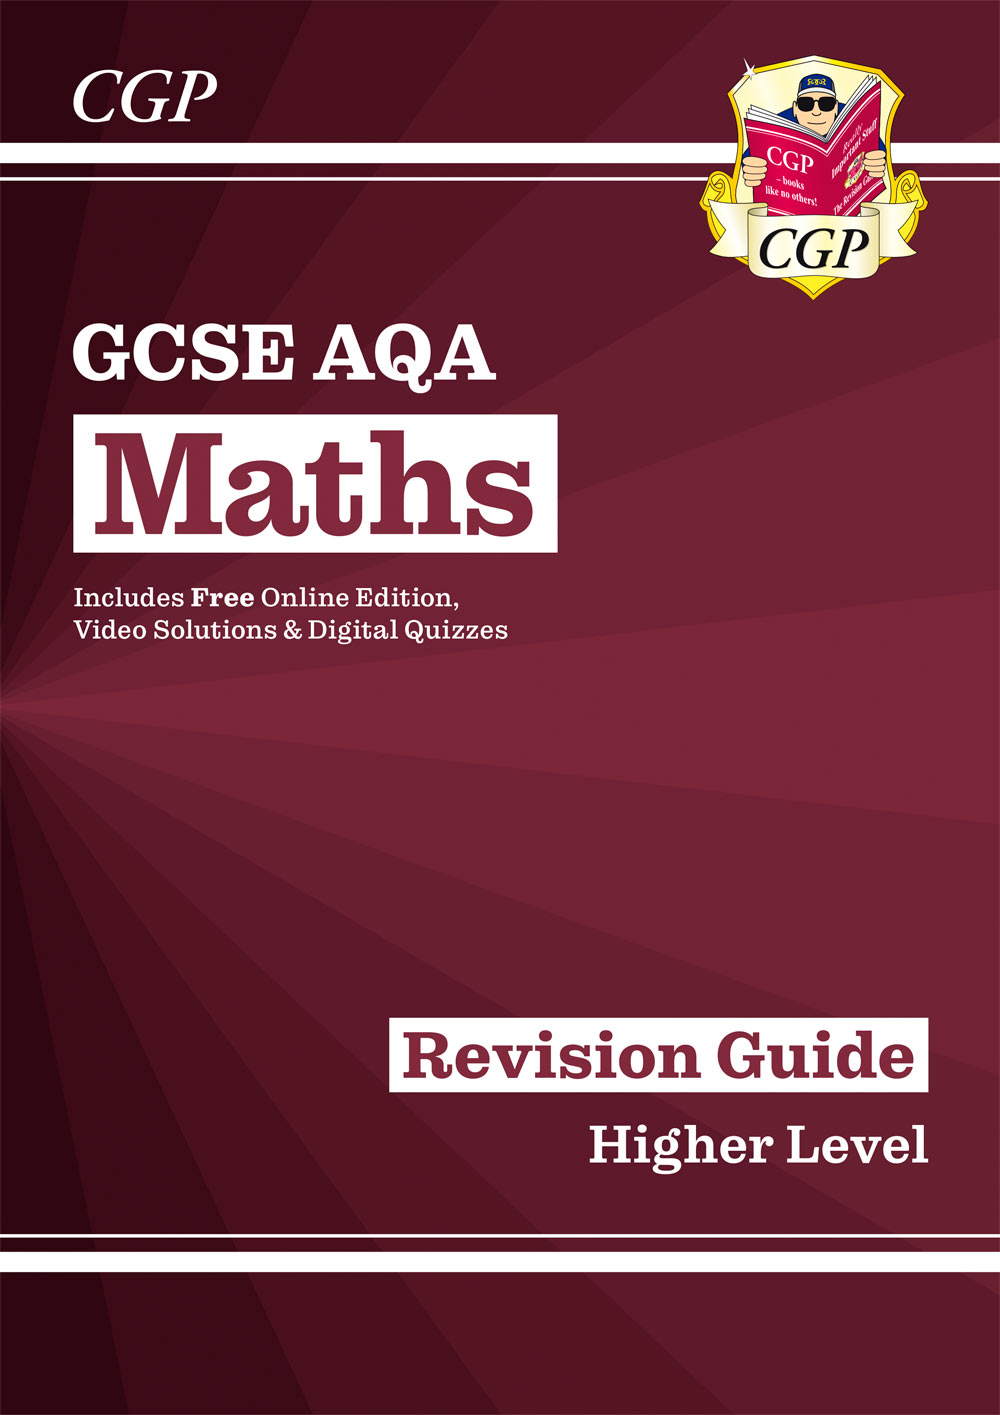 MQHR47 - New 2021 GCSE Maths AQA Revision Guide: Higher inc Online Edition, Videos & Quizzes